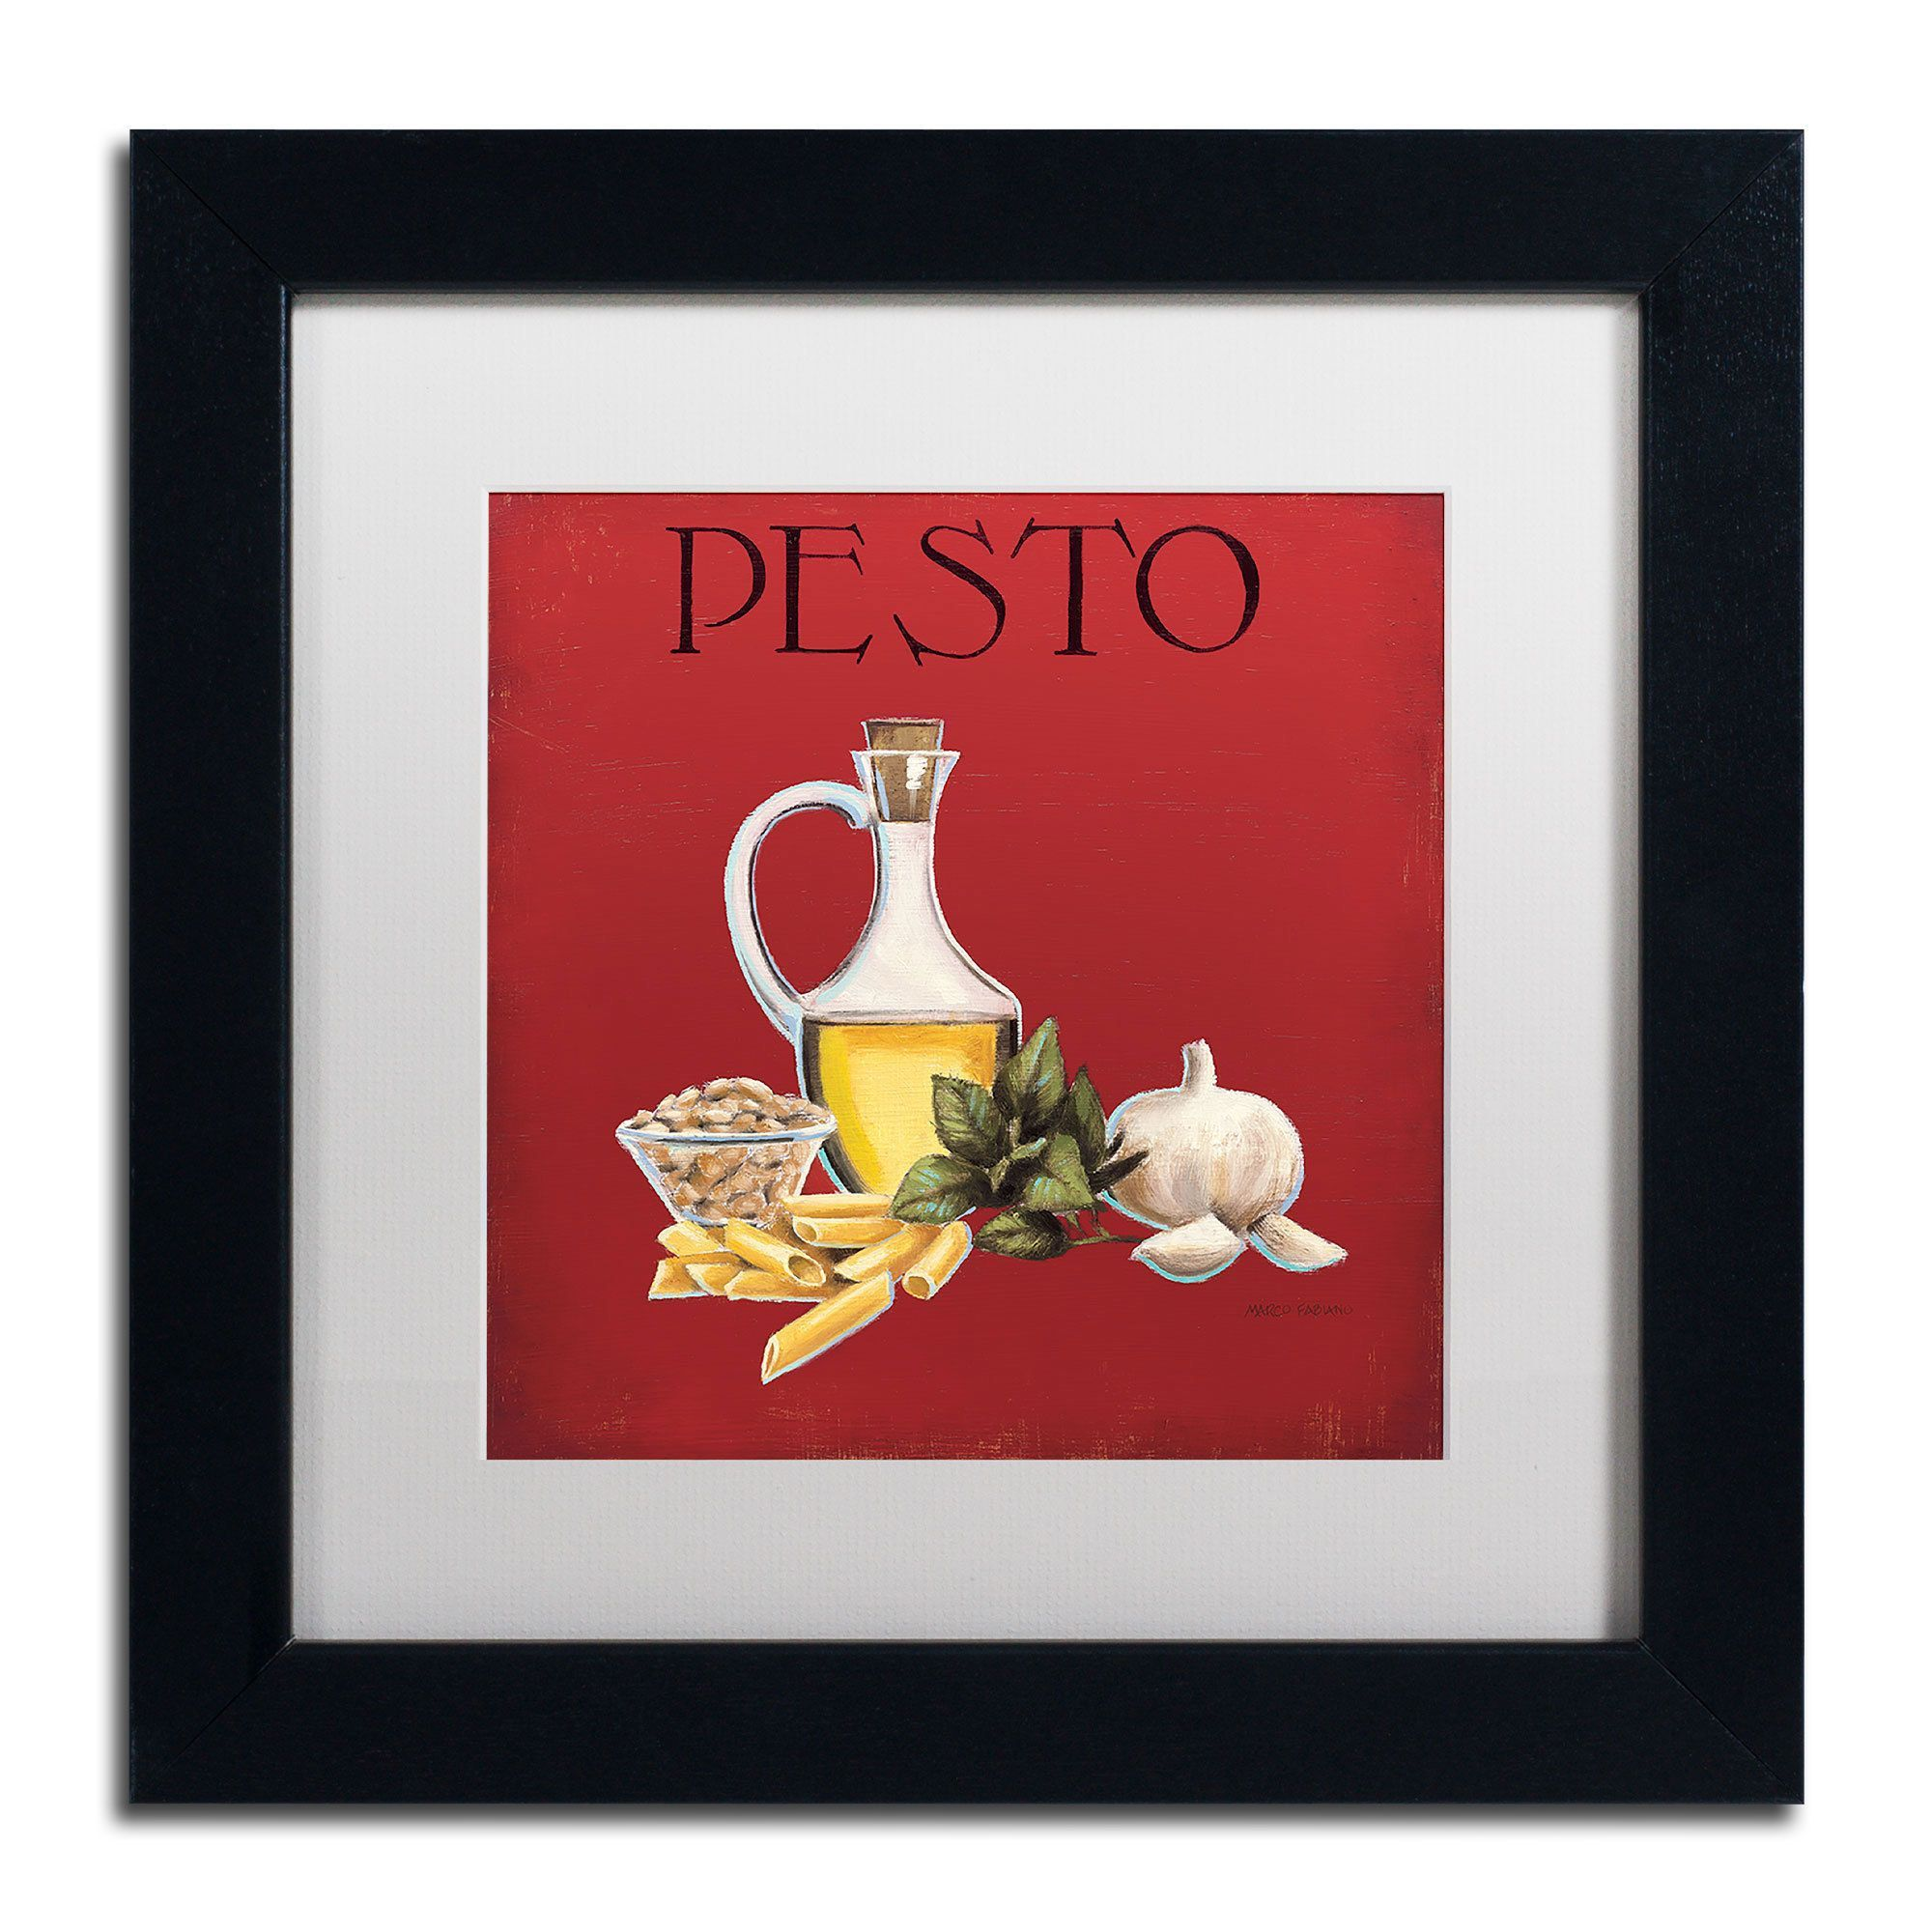 Marco fabiano uitalian cuisine iiu framed matted art products